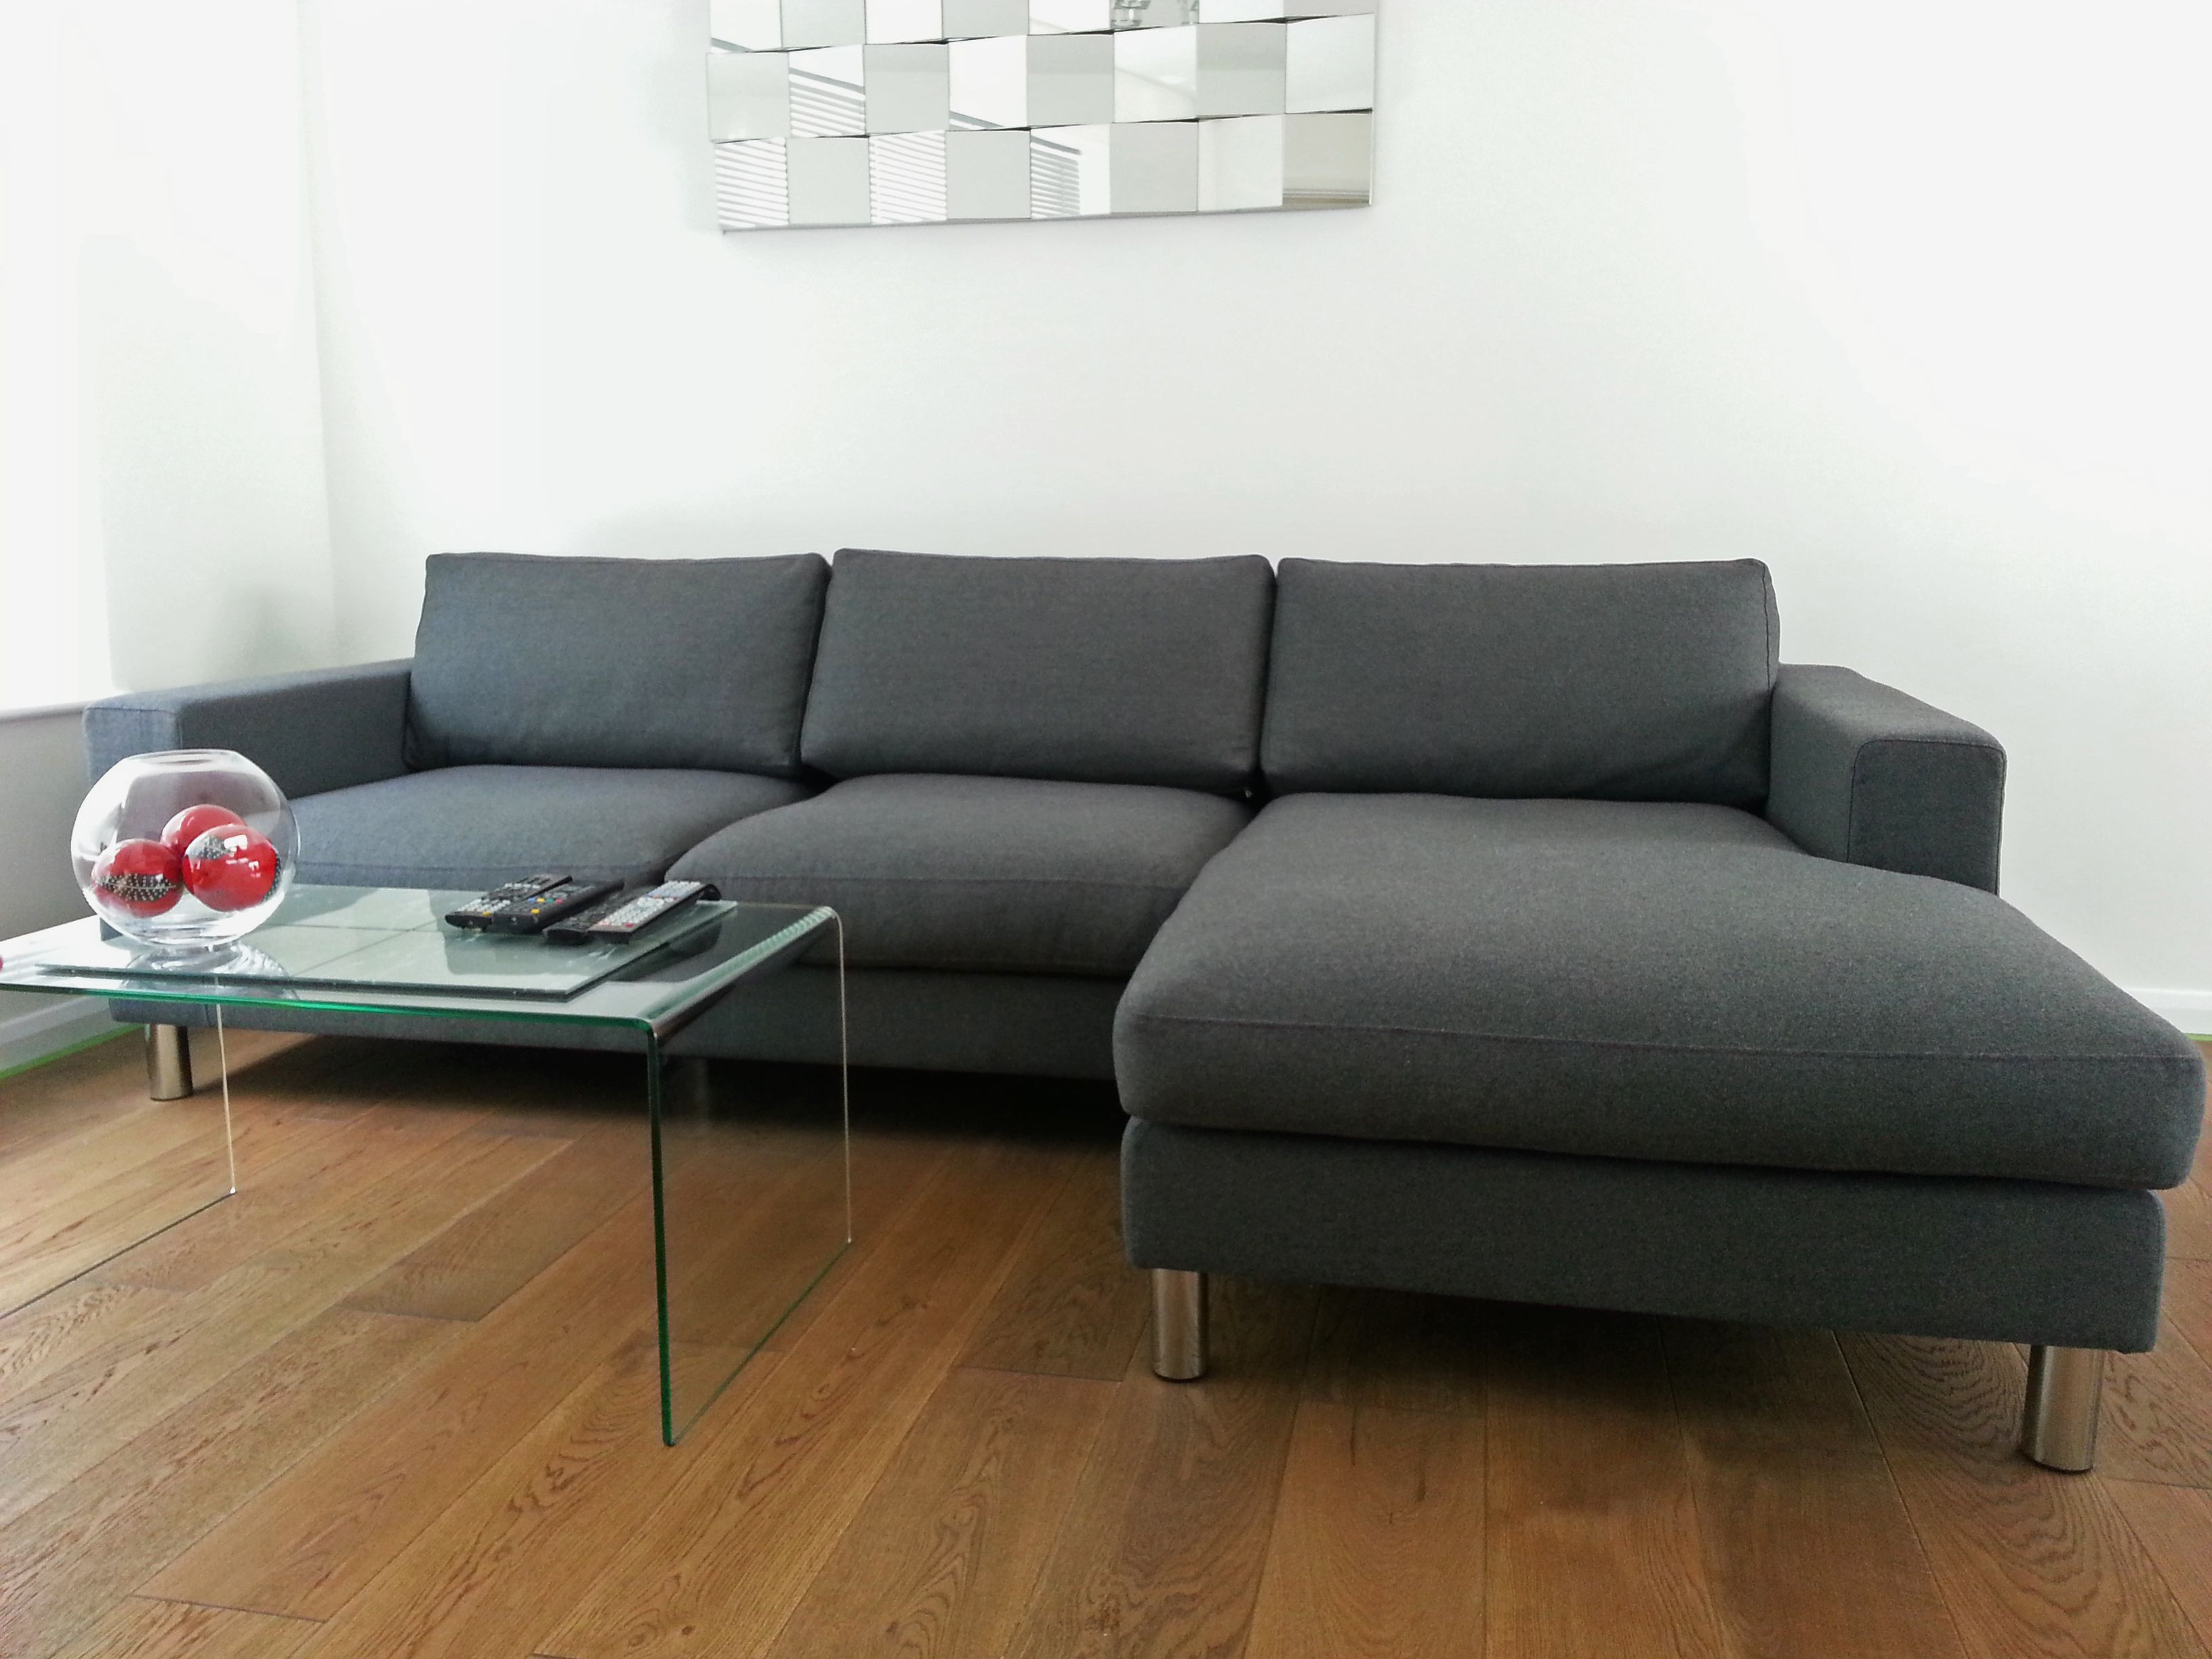 Biki Modern Corner Sofa Photo Sent By Aggy From Bristol You Can Purchase